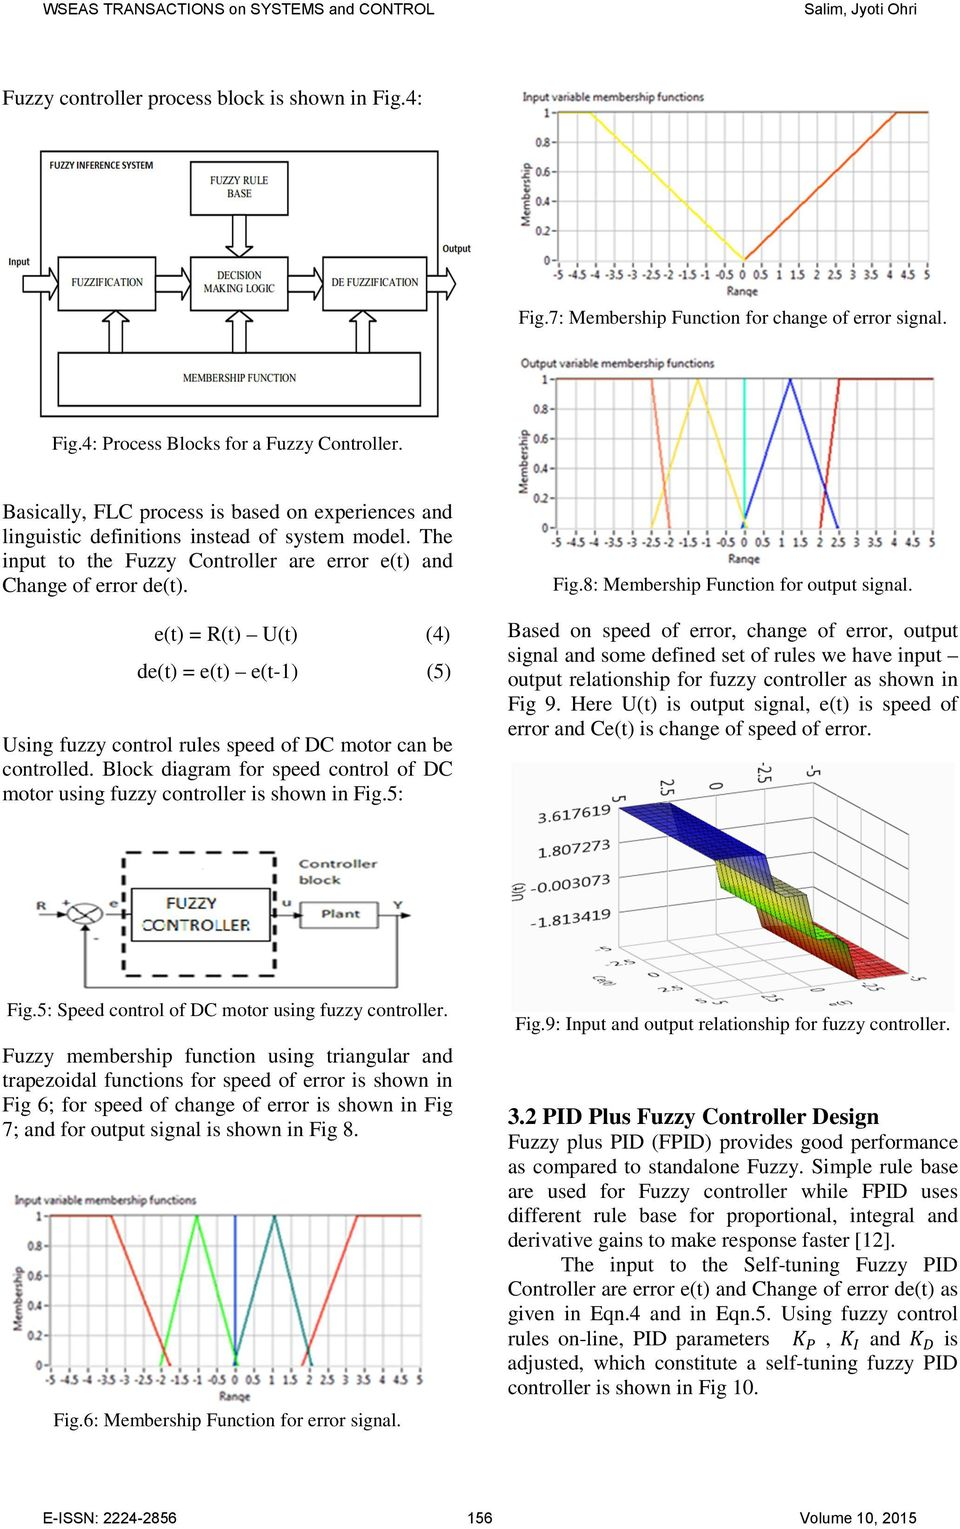 Fuzzy Based Pid Controller For Speed Control Of Dc Motor Using Figure 4 Closed Loop Brushless Circuit With The Et Rt Ut